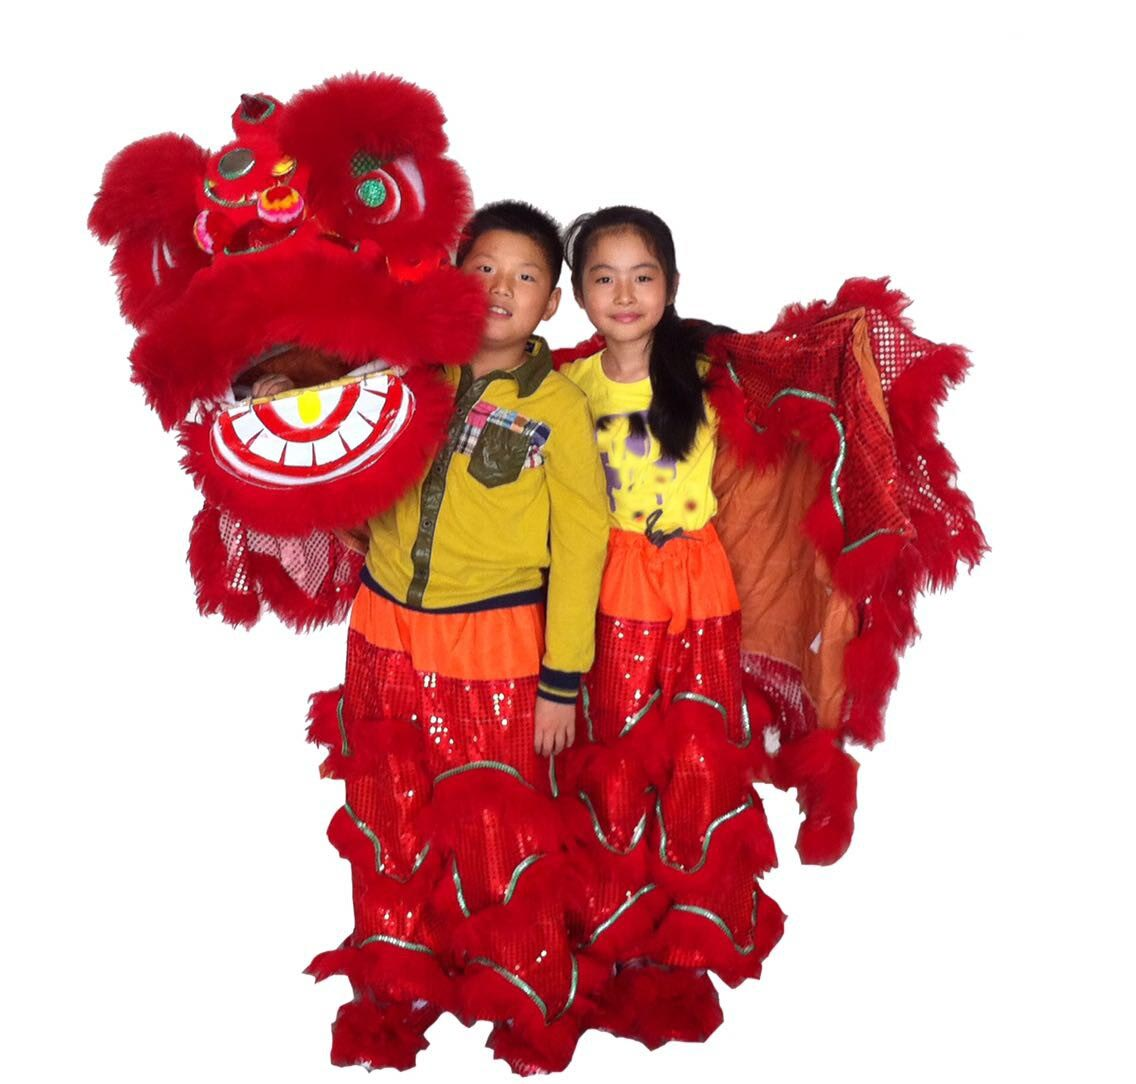 D CHILDREN high quality pur Lion Dance Costume pure wool Southern Lion kid size chinese Folk costume lion mascot costume